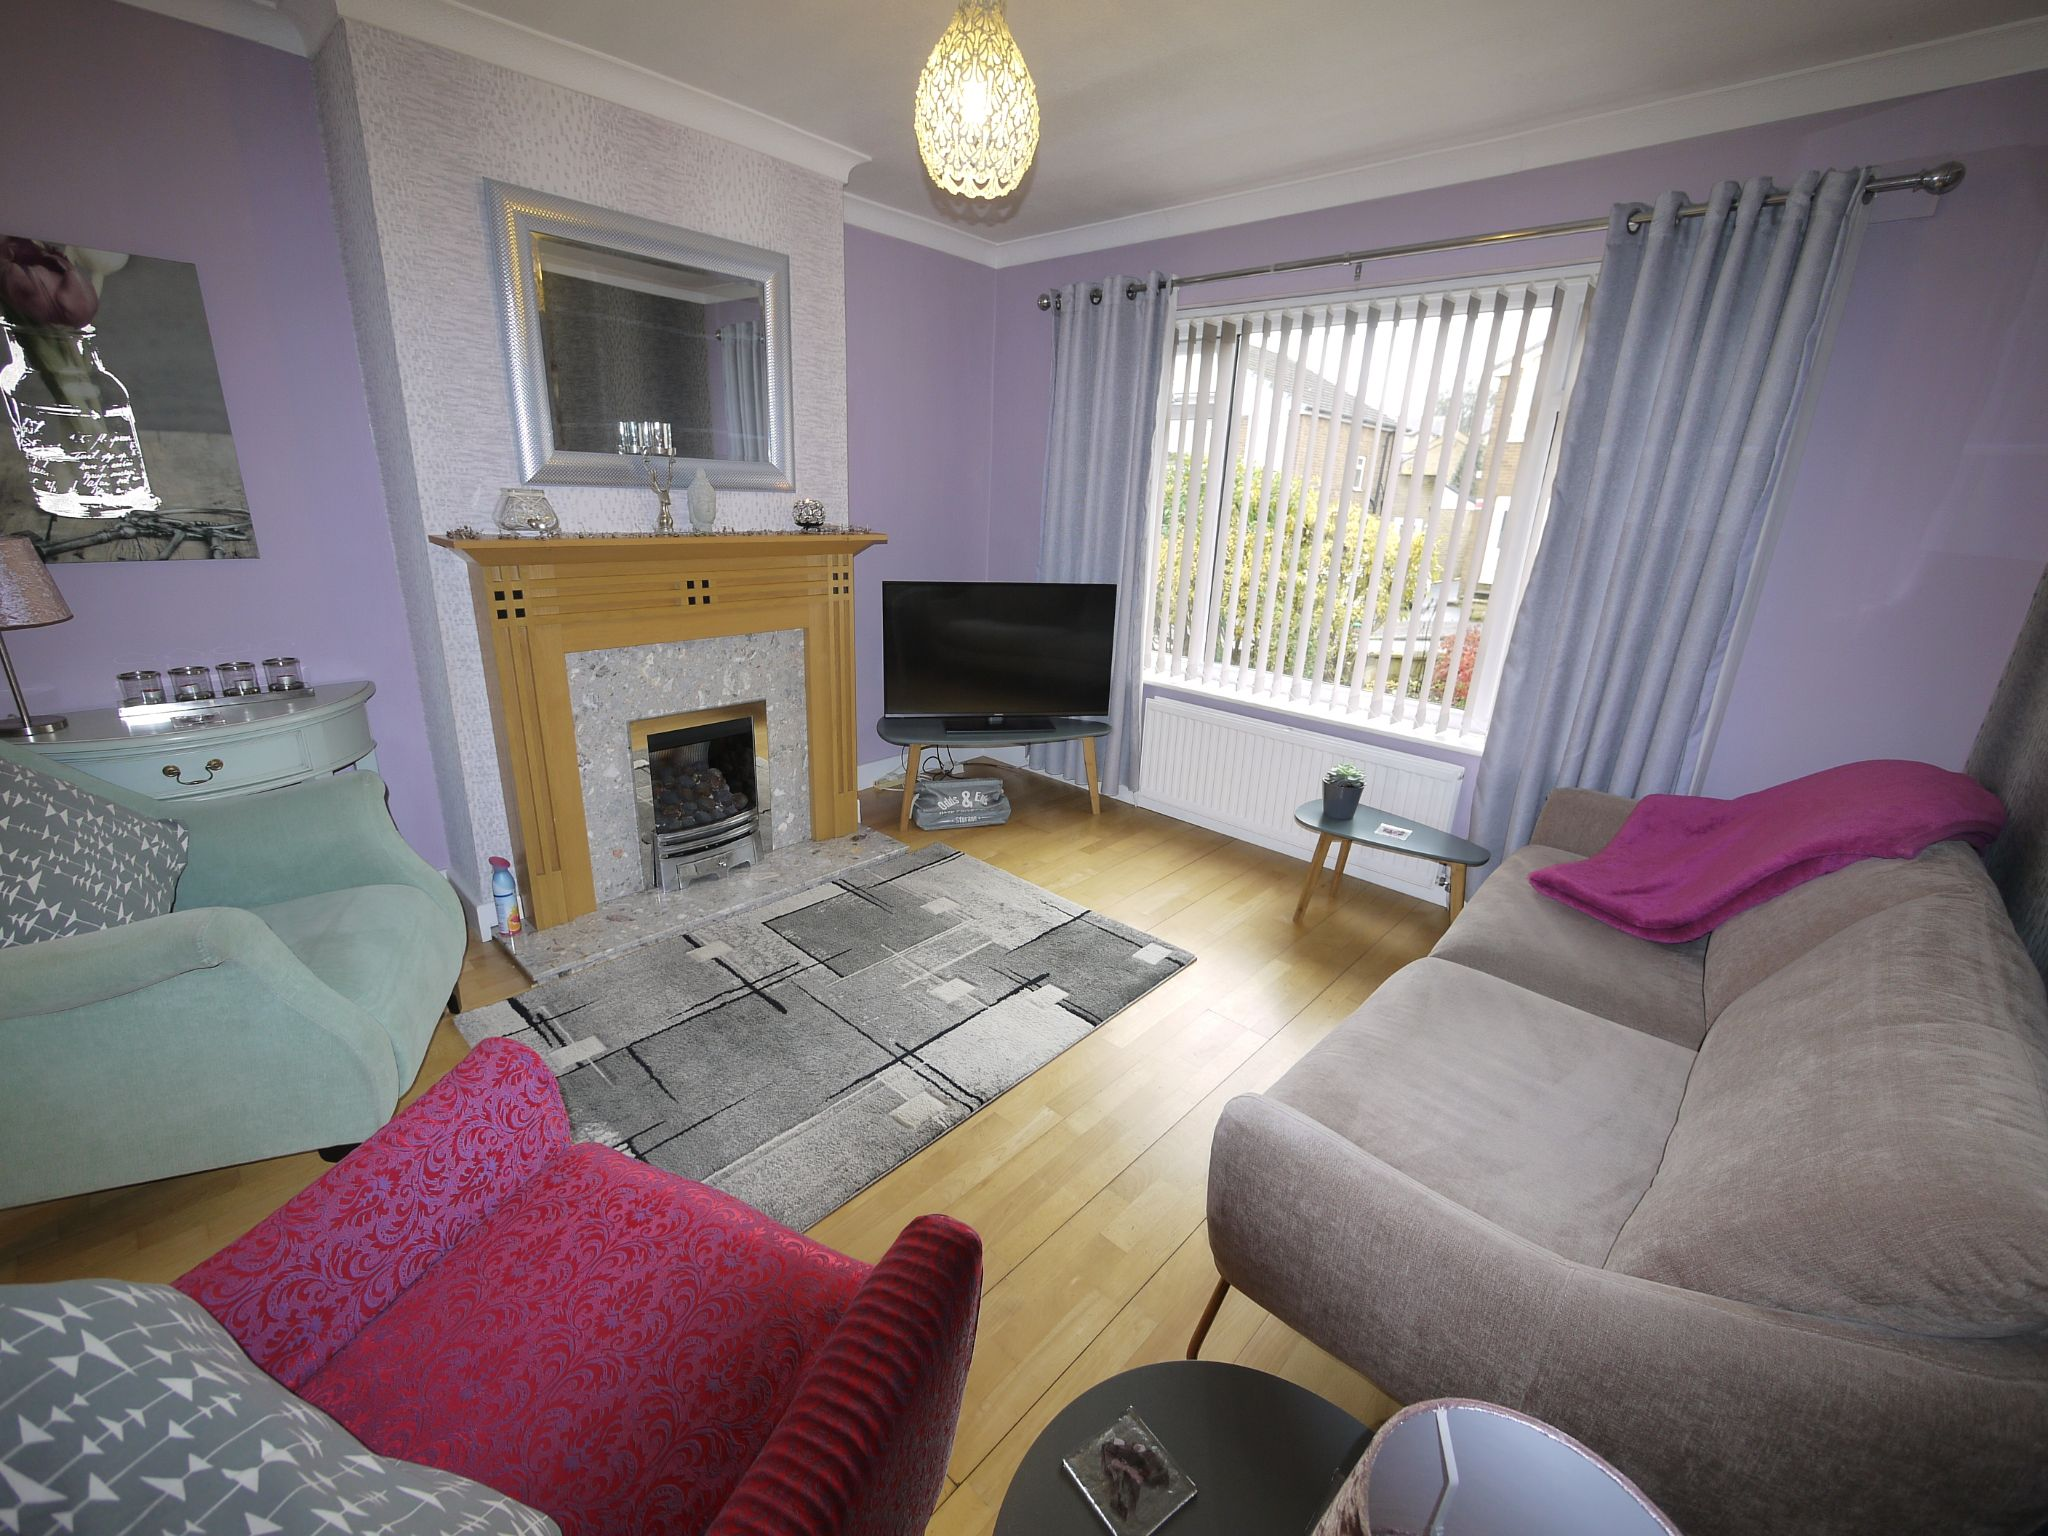 3 bedroom semi-detached house SSTC in Brighouse - Loung2.